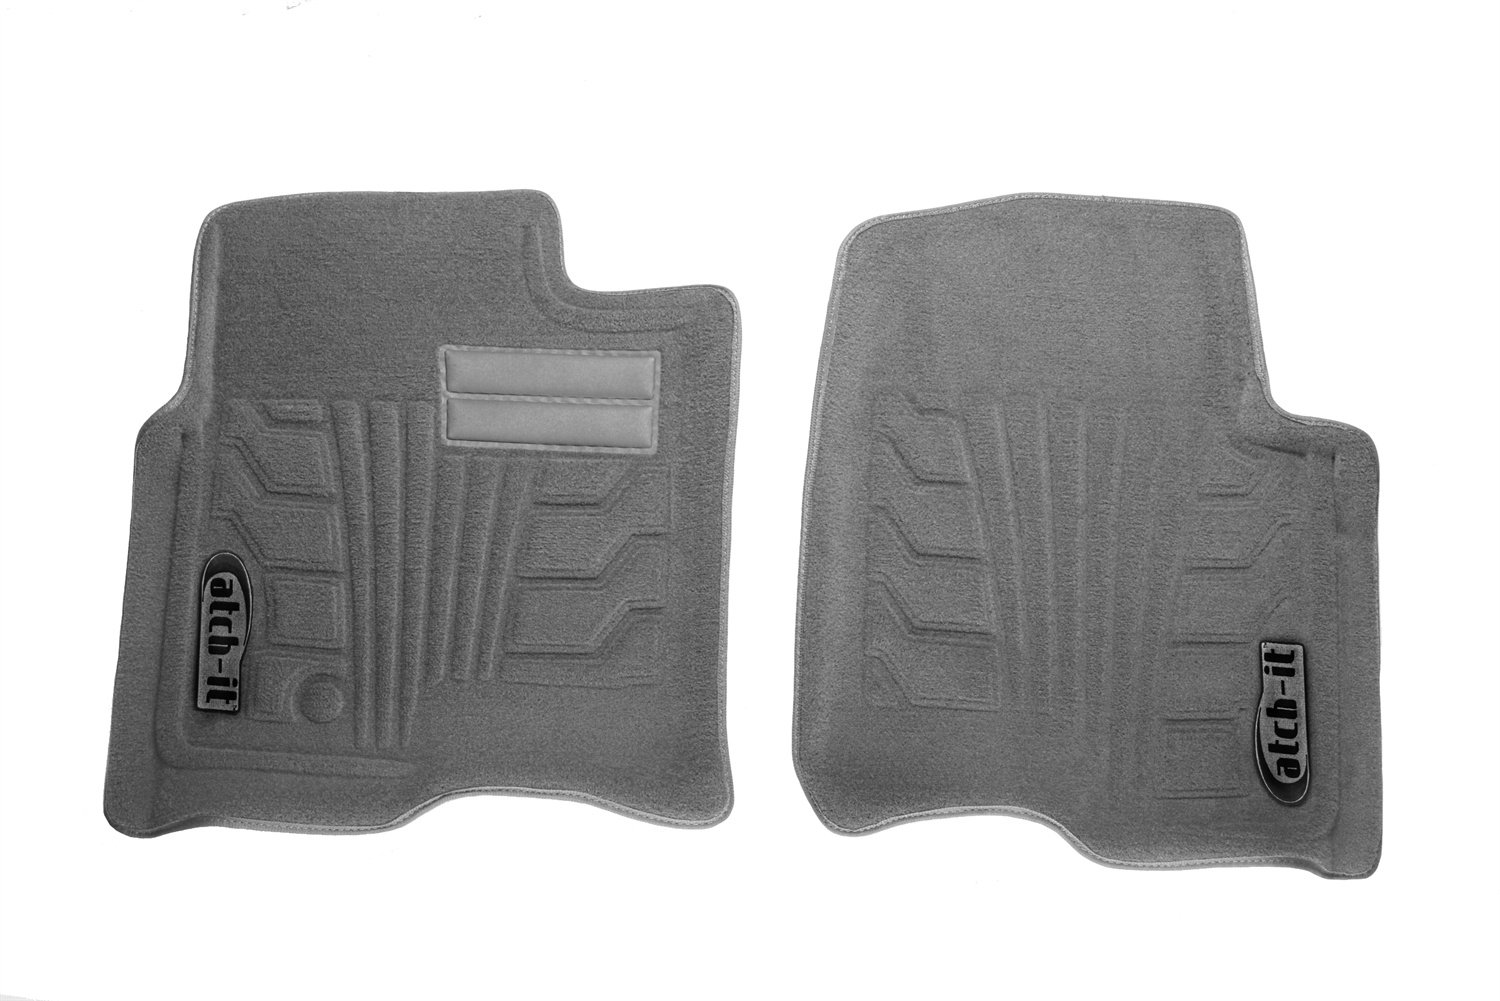 Lund 583044-G Catch-It Carpet Grey Front Seat Floor Mat Set of 2